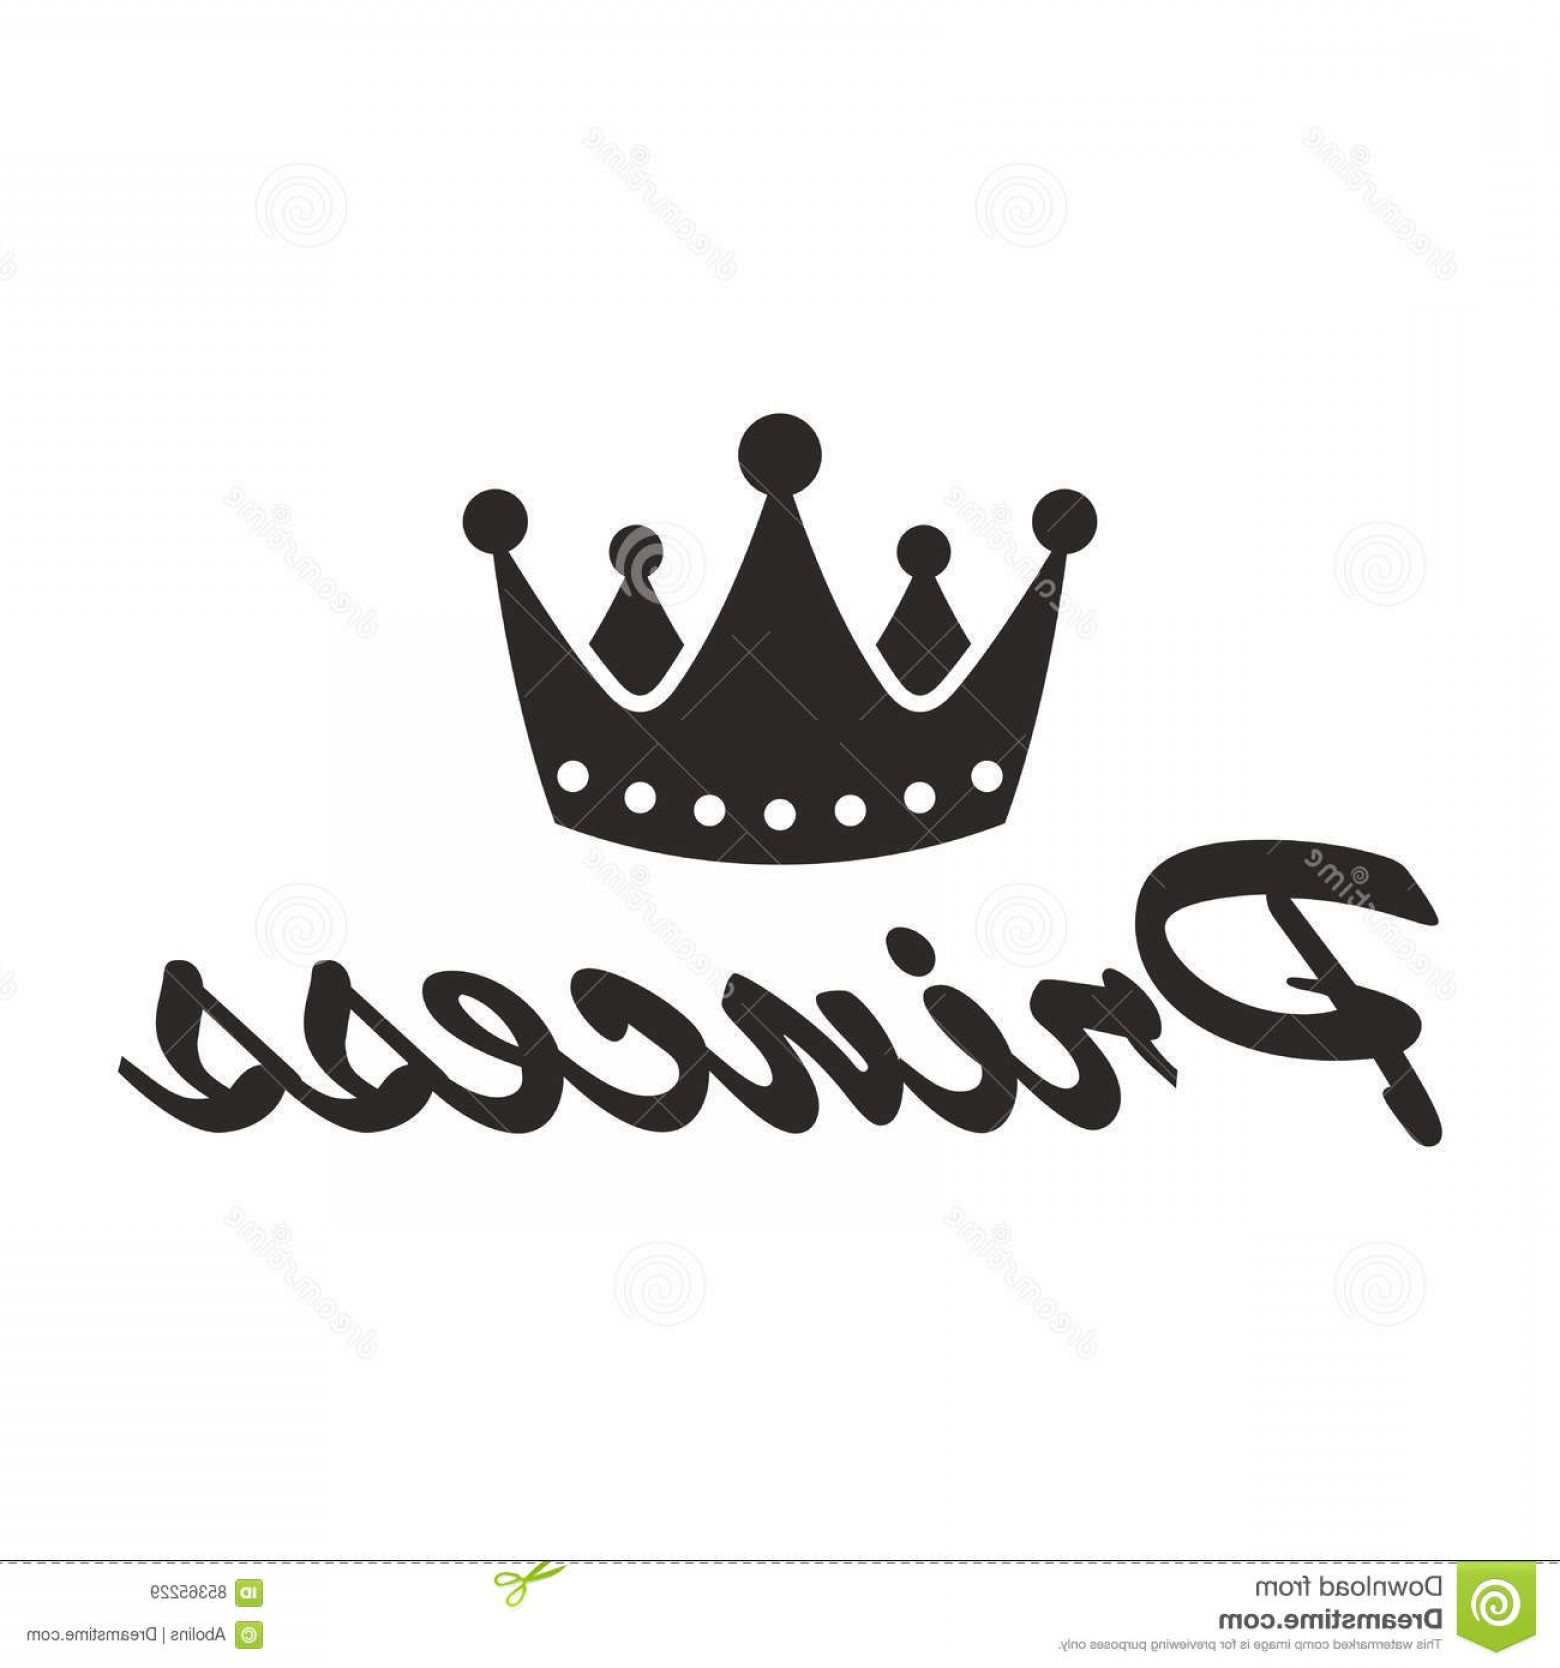 Princess Crown Vector Graphic: Stock Illustration Princess Crown Vector Icon Isolated White Background Image